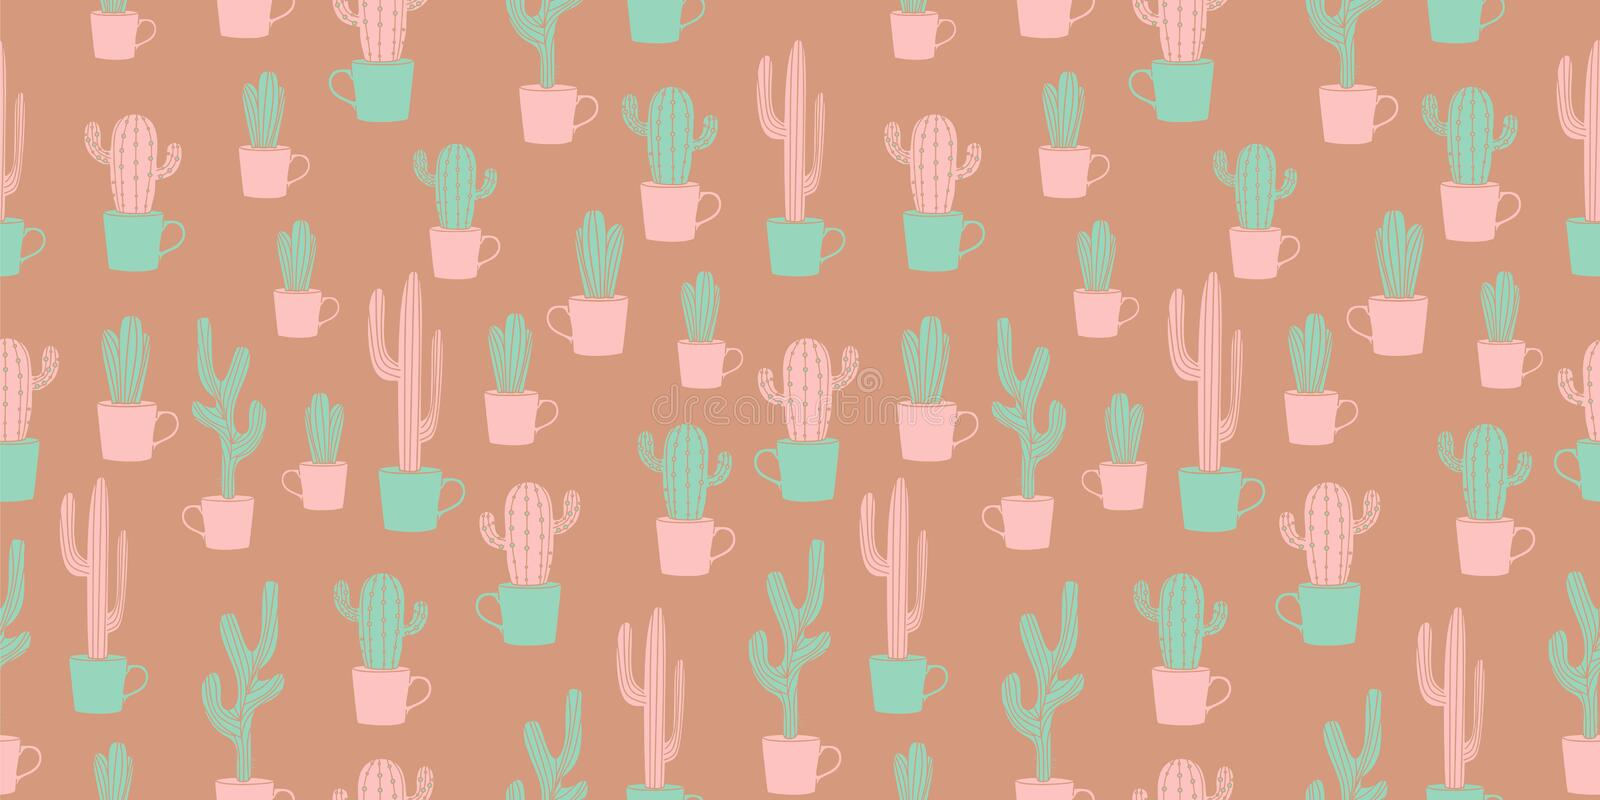 Vintage cactus design seamless pattern with cute scandinavian hand drawn. Garden vector decoration background summer desert plant textile fabric flower royalty free illustration